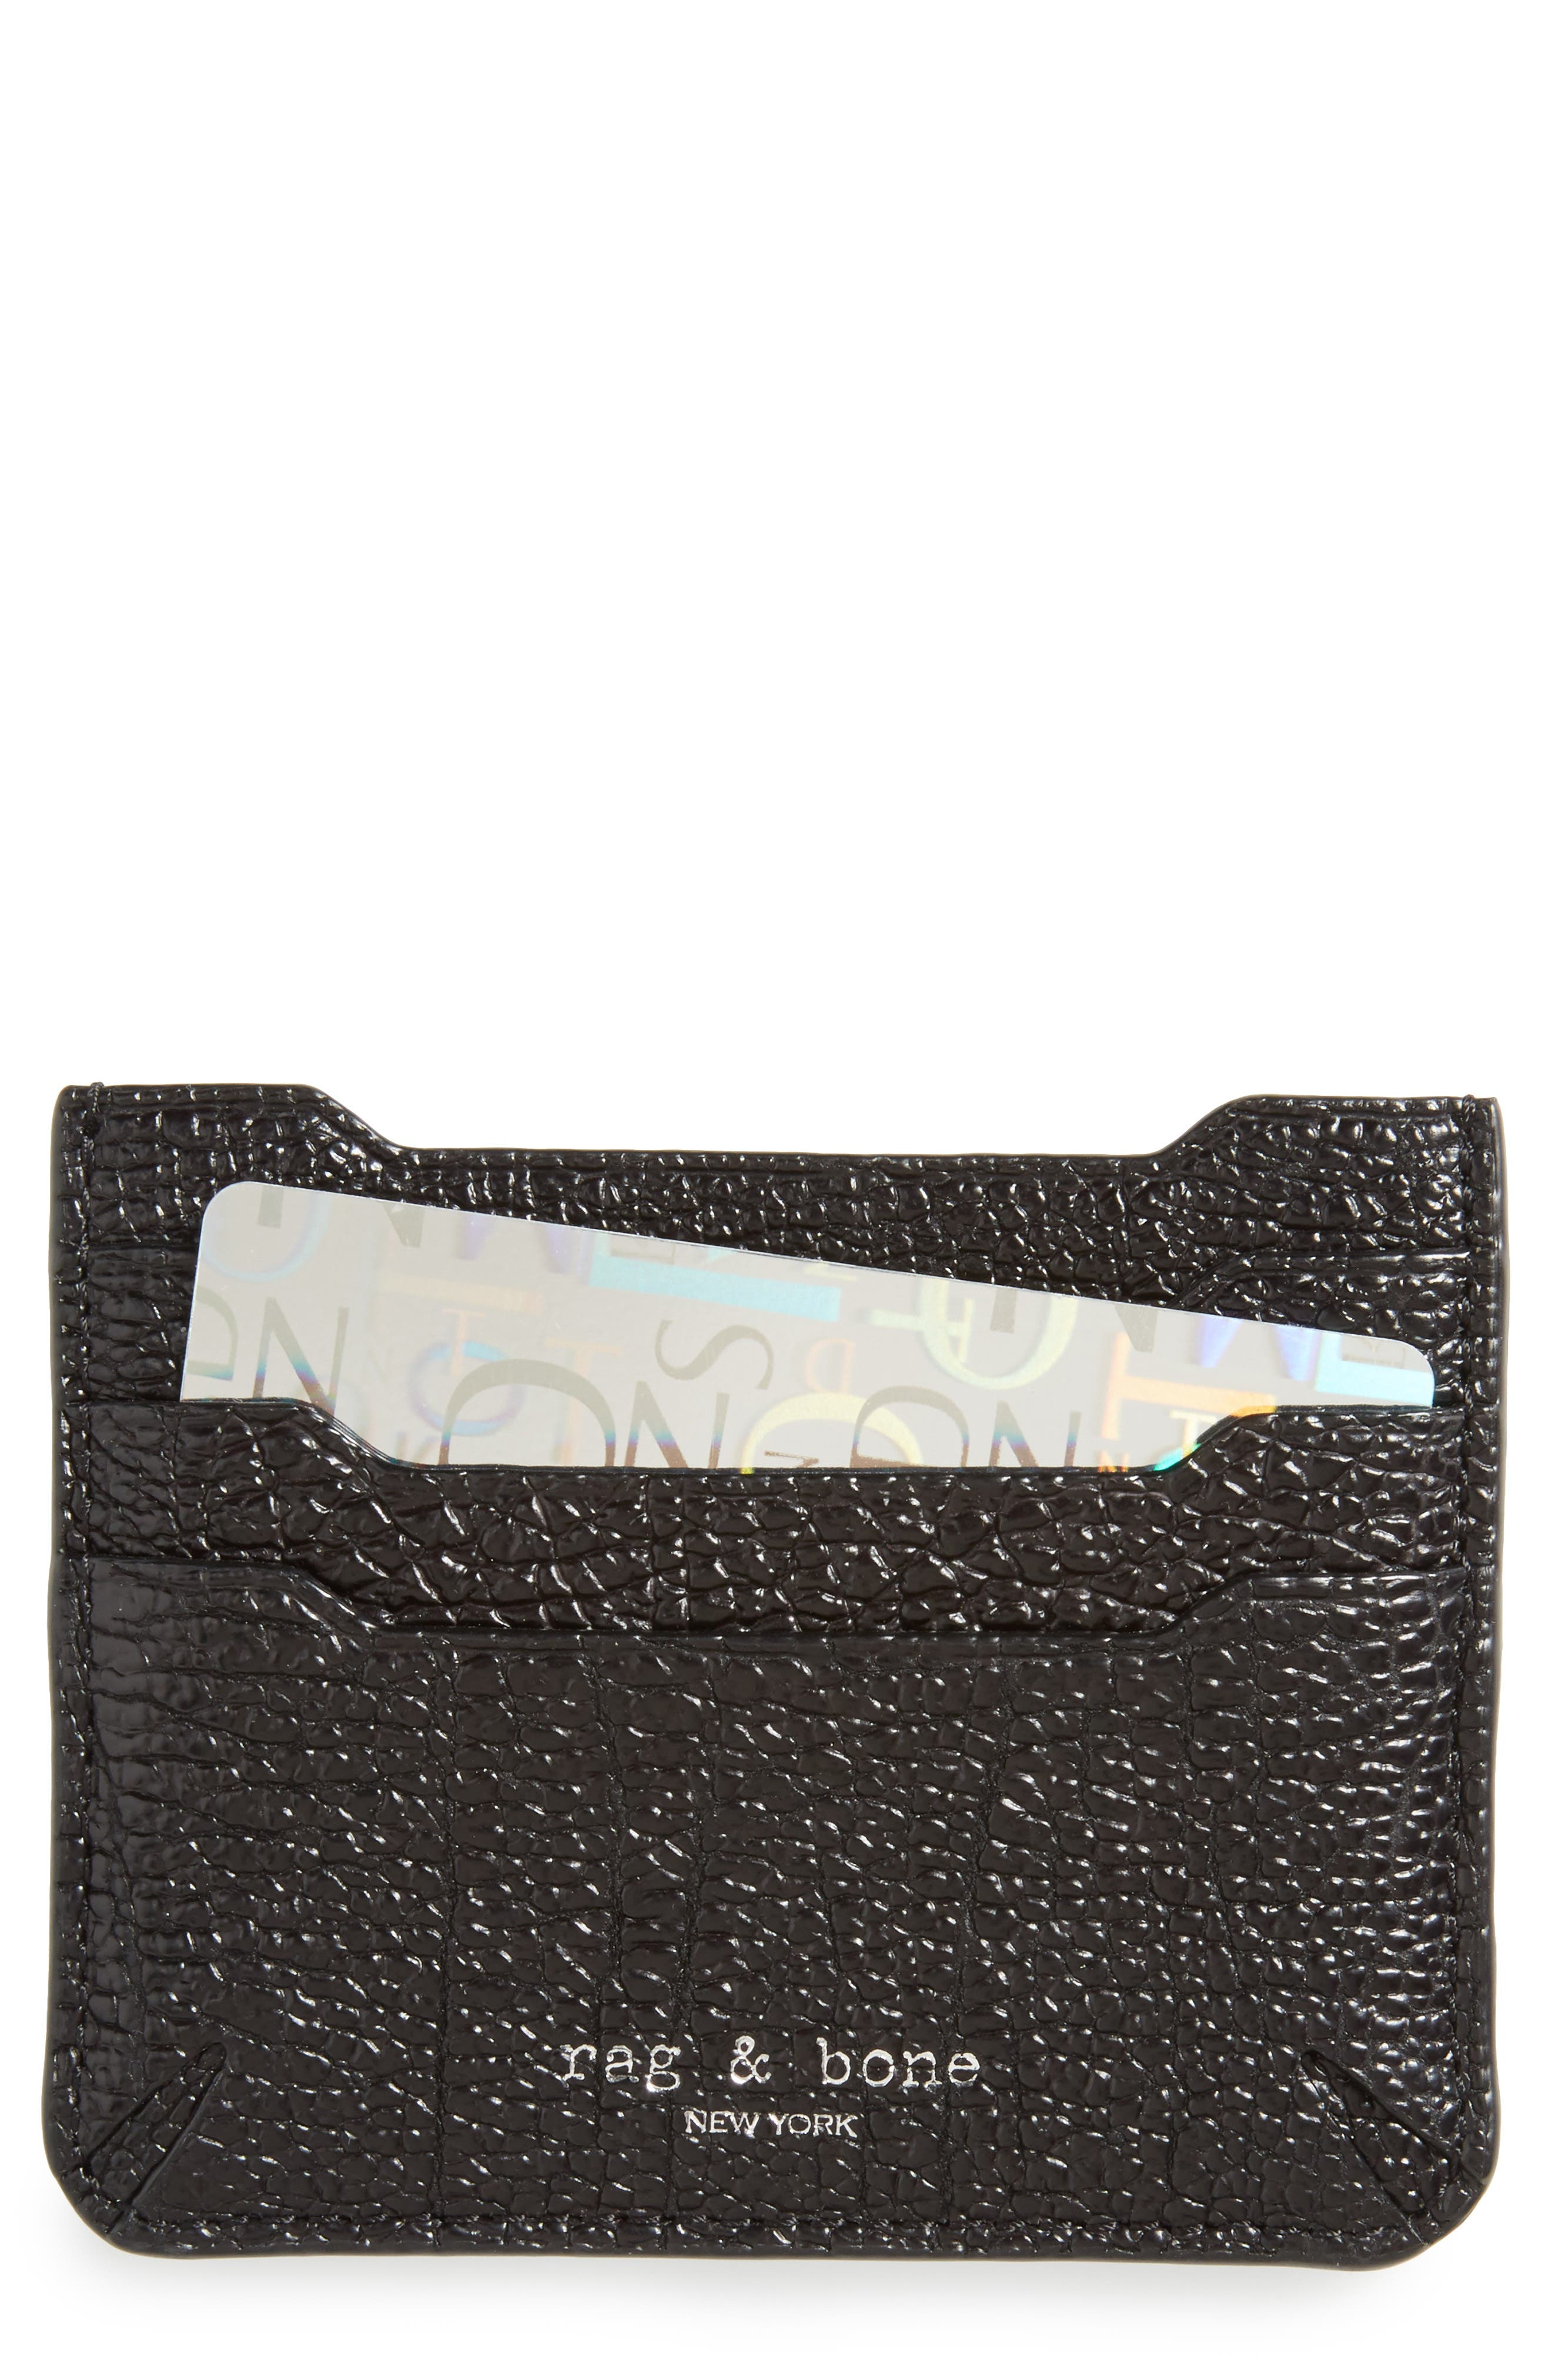 'Crosby' Crackle Leather Card Case,                             Alternate thumbnail 2, color,